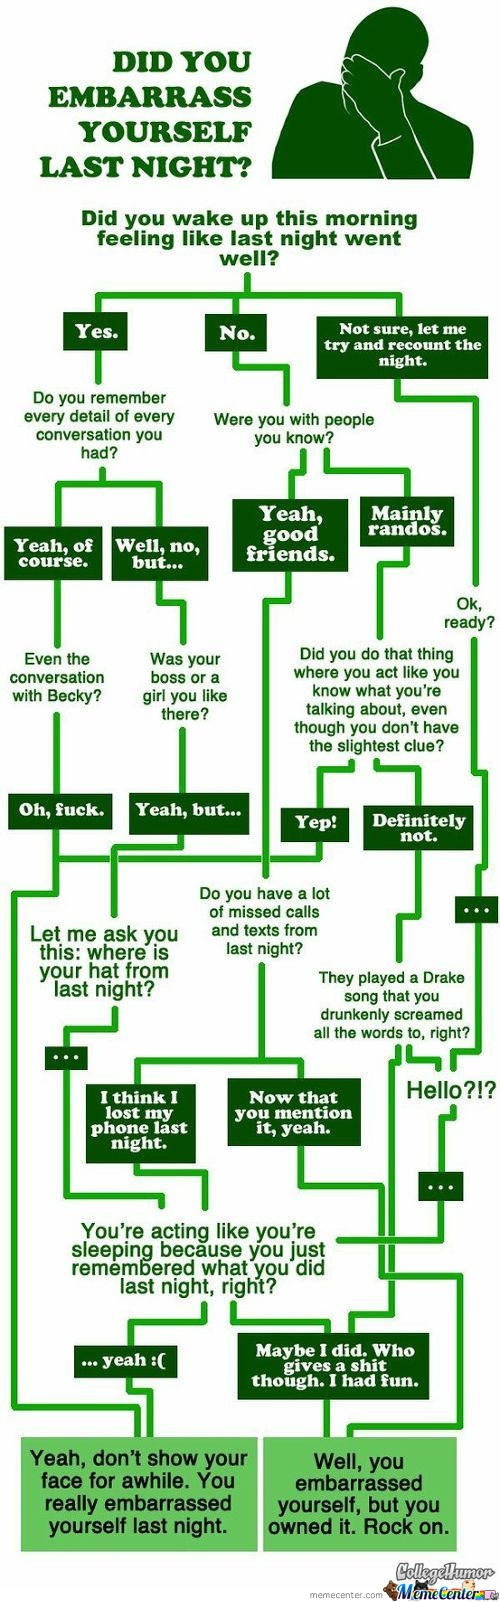 Flowchart: Did You Embarrass Yourself Last Night?